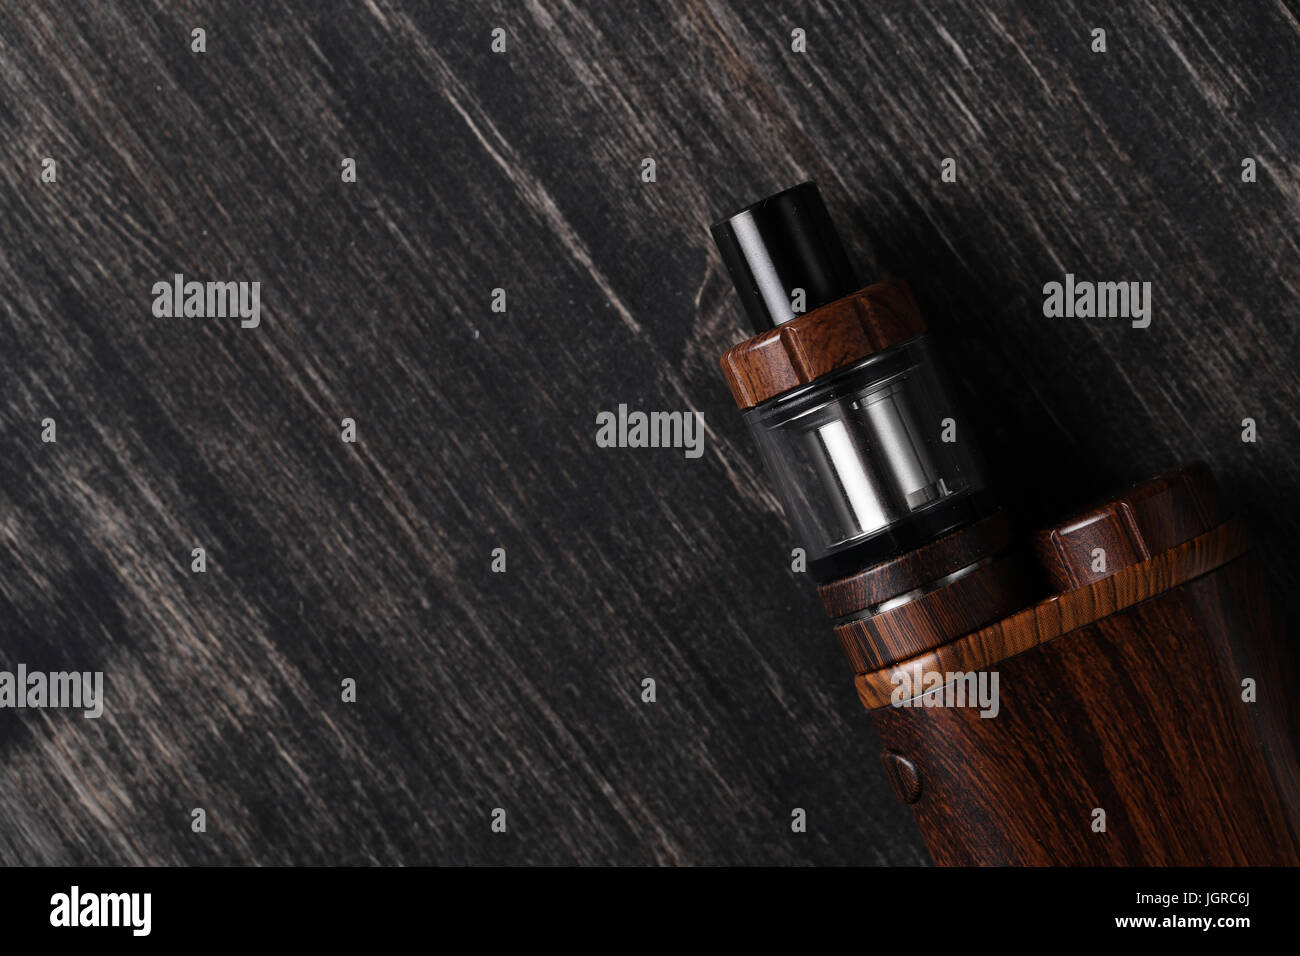 Vaping device on the wooden table - Stock Image